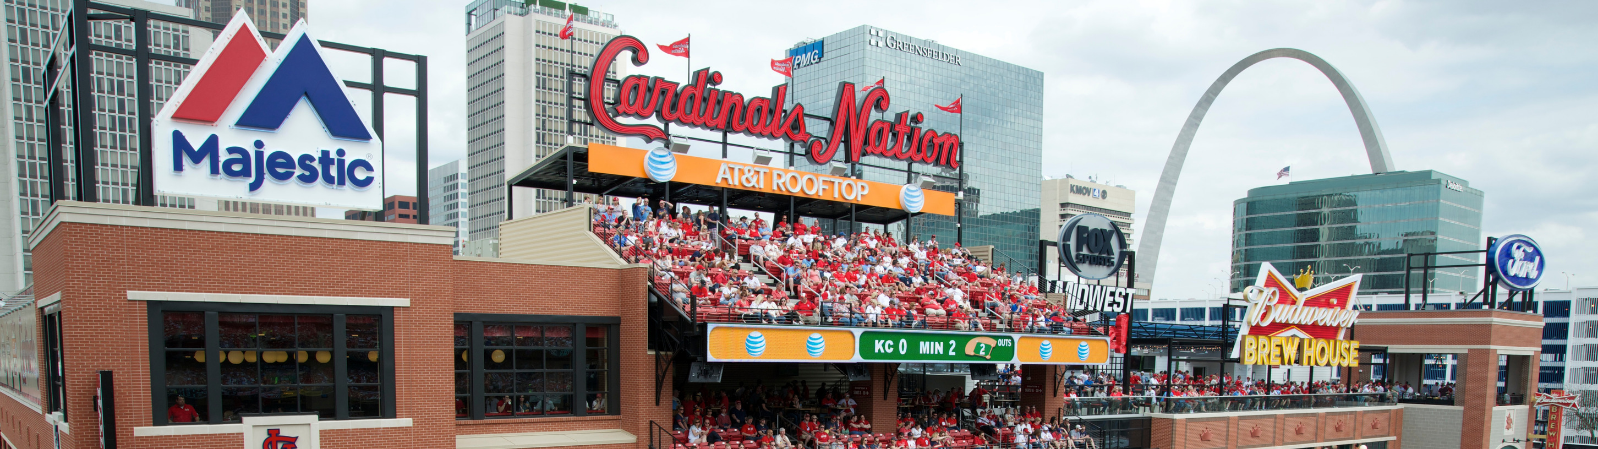 Cardinals Nation, St. Louis, MO